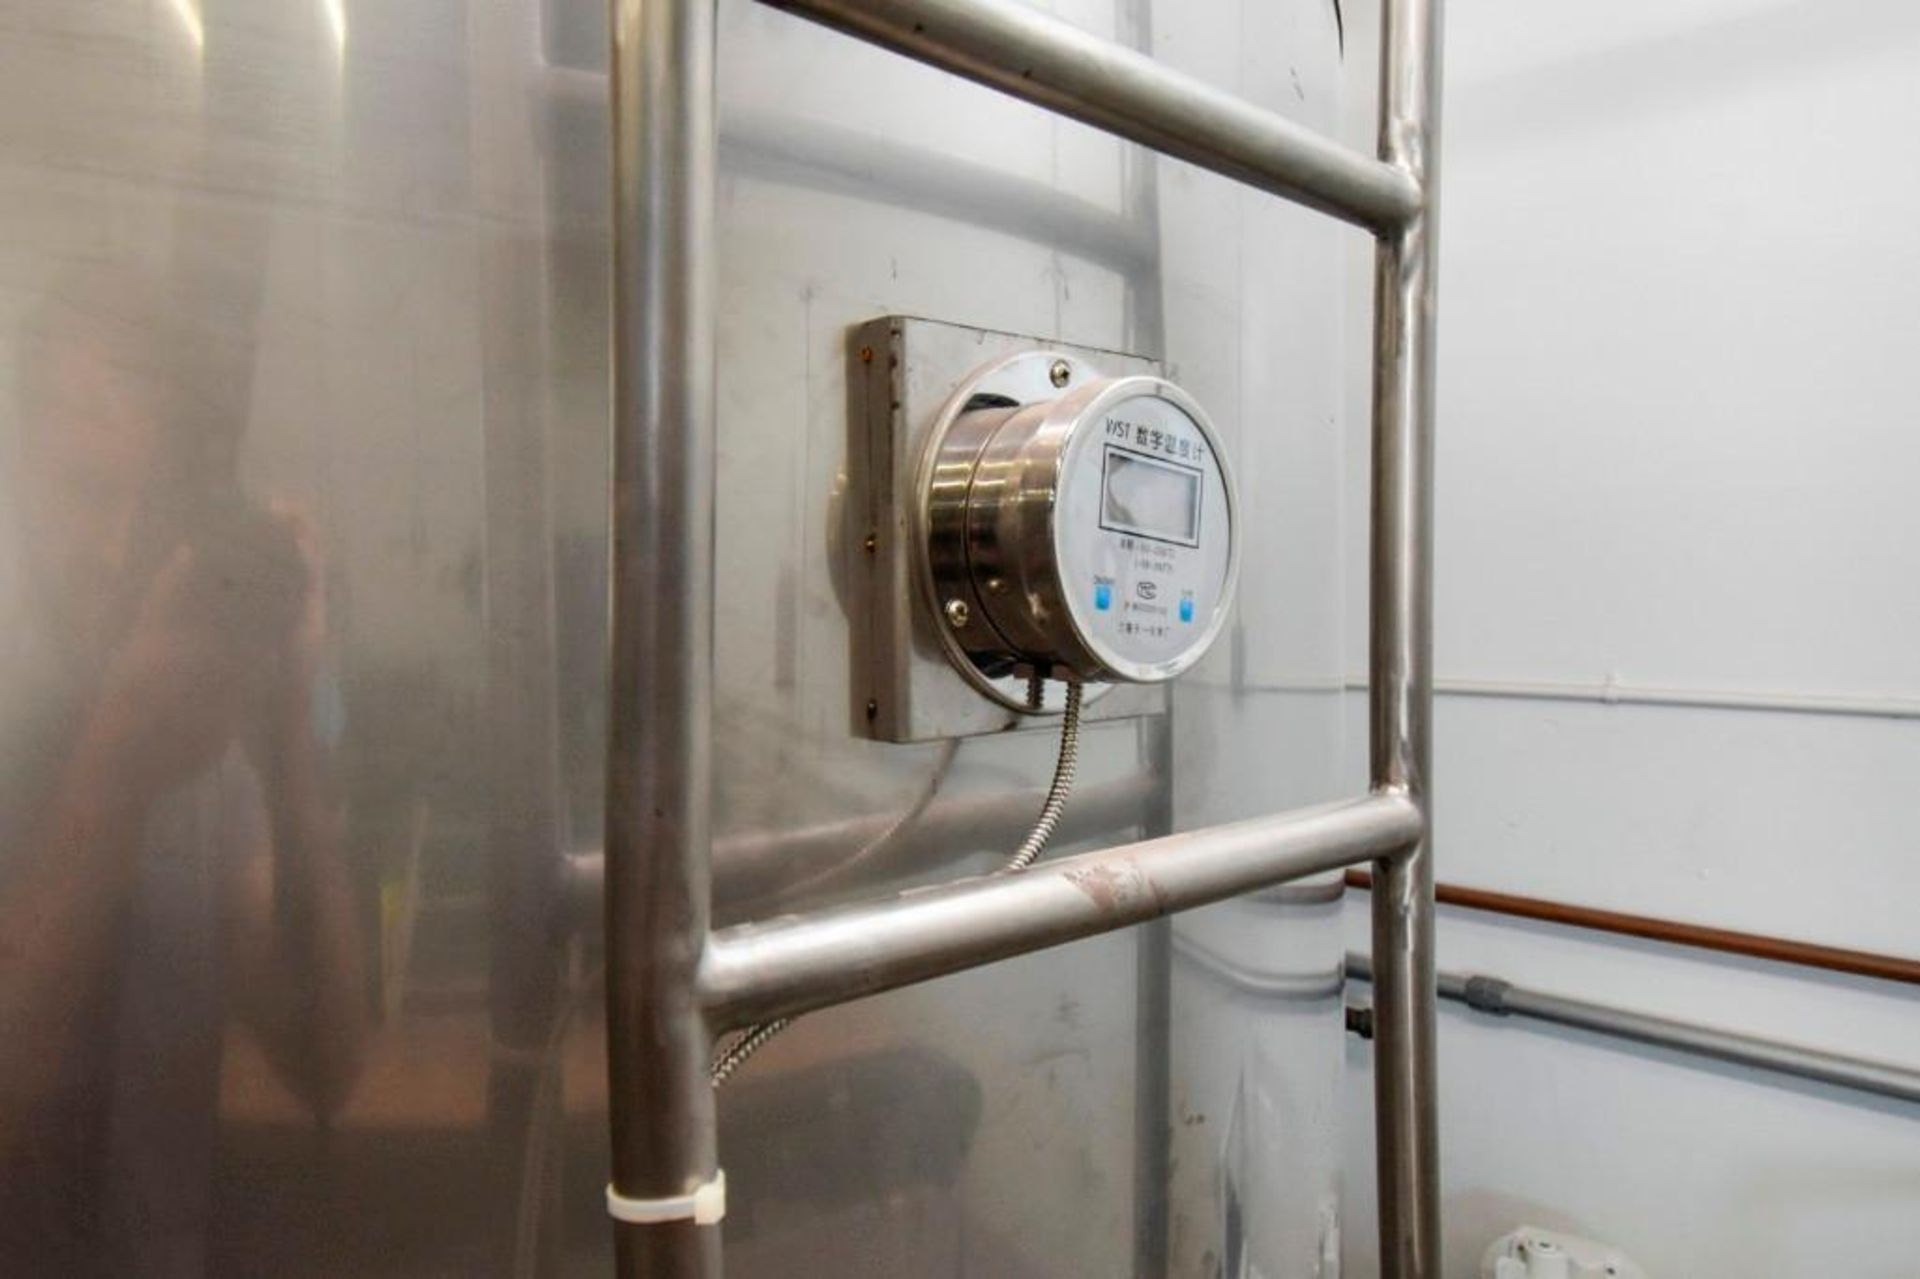 Large Jacketed Mixing Tank 1000 Gallon - Image 4 of 16